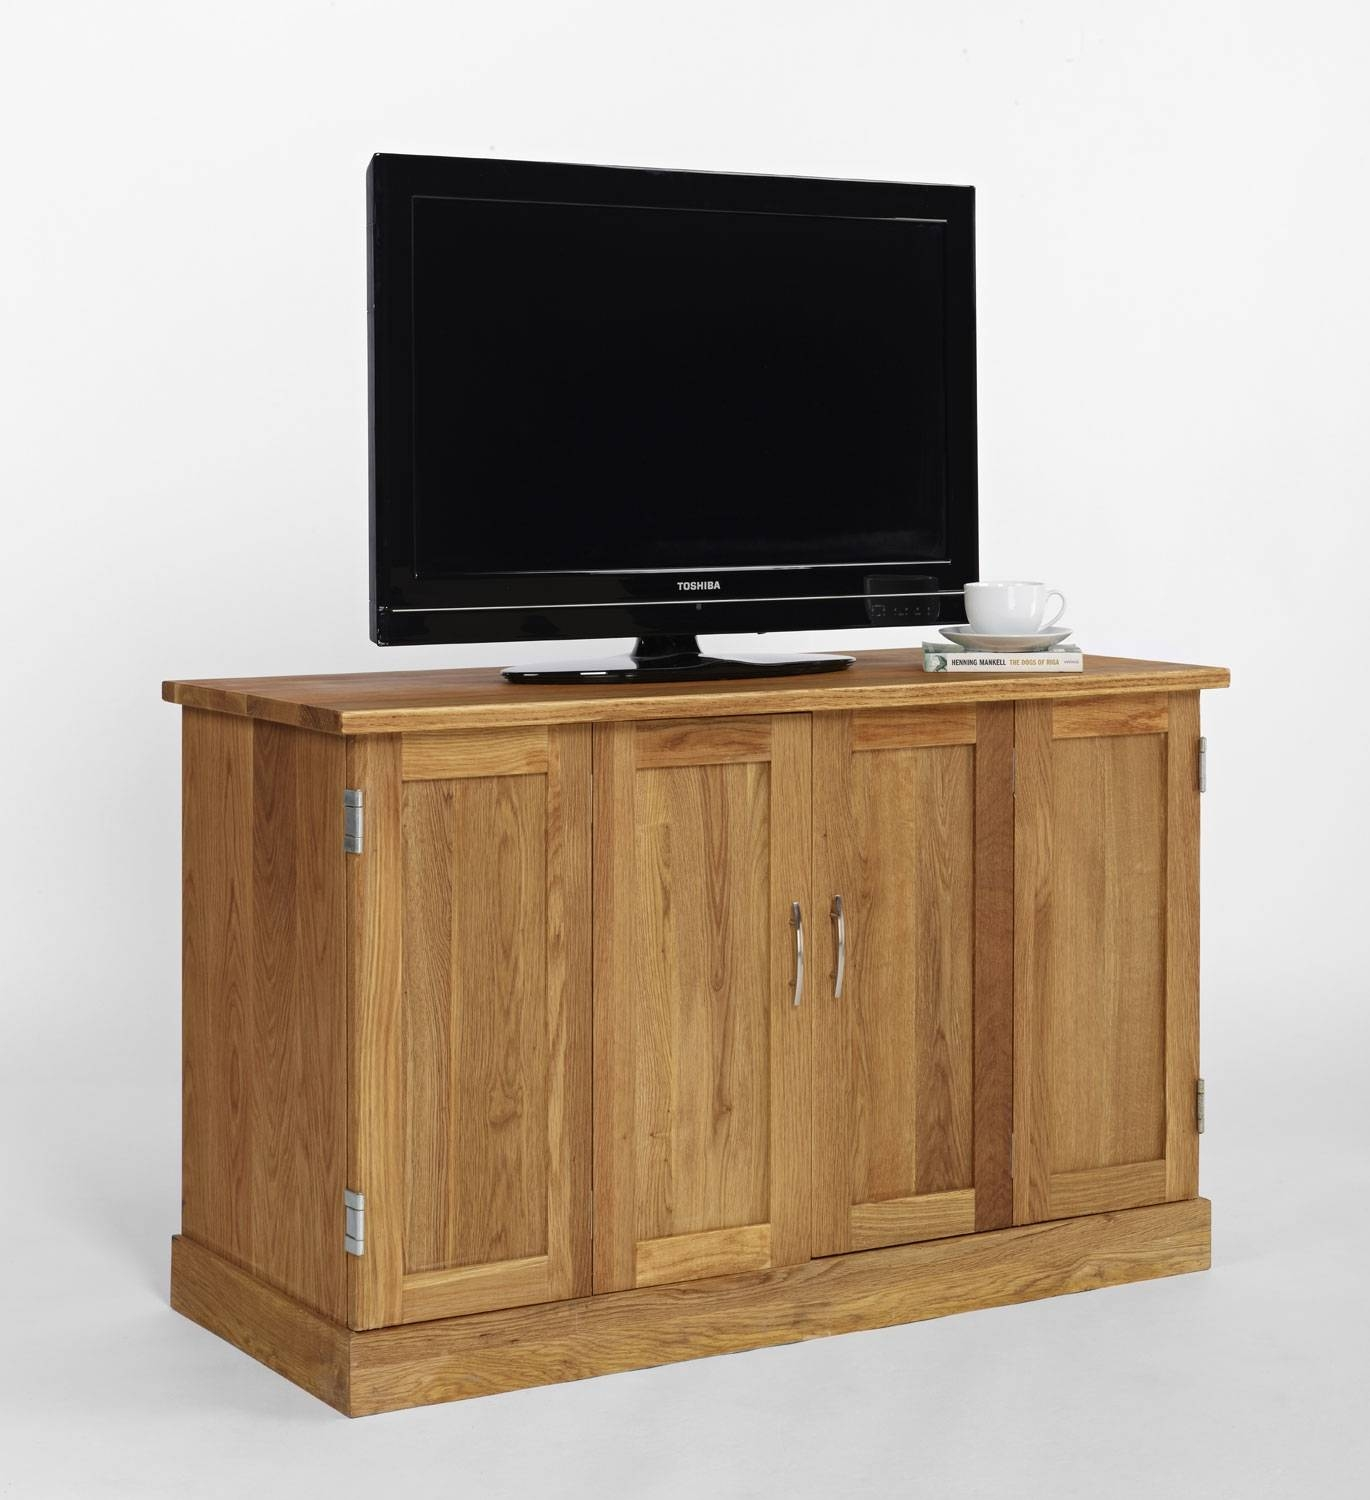 Brooklyn Contemporary Oak Widescreen Tv Cabinet for Contemporary Oak Tv Cabinets (Image 3 of 15)